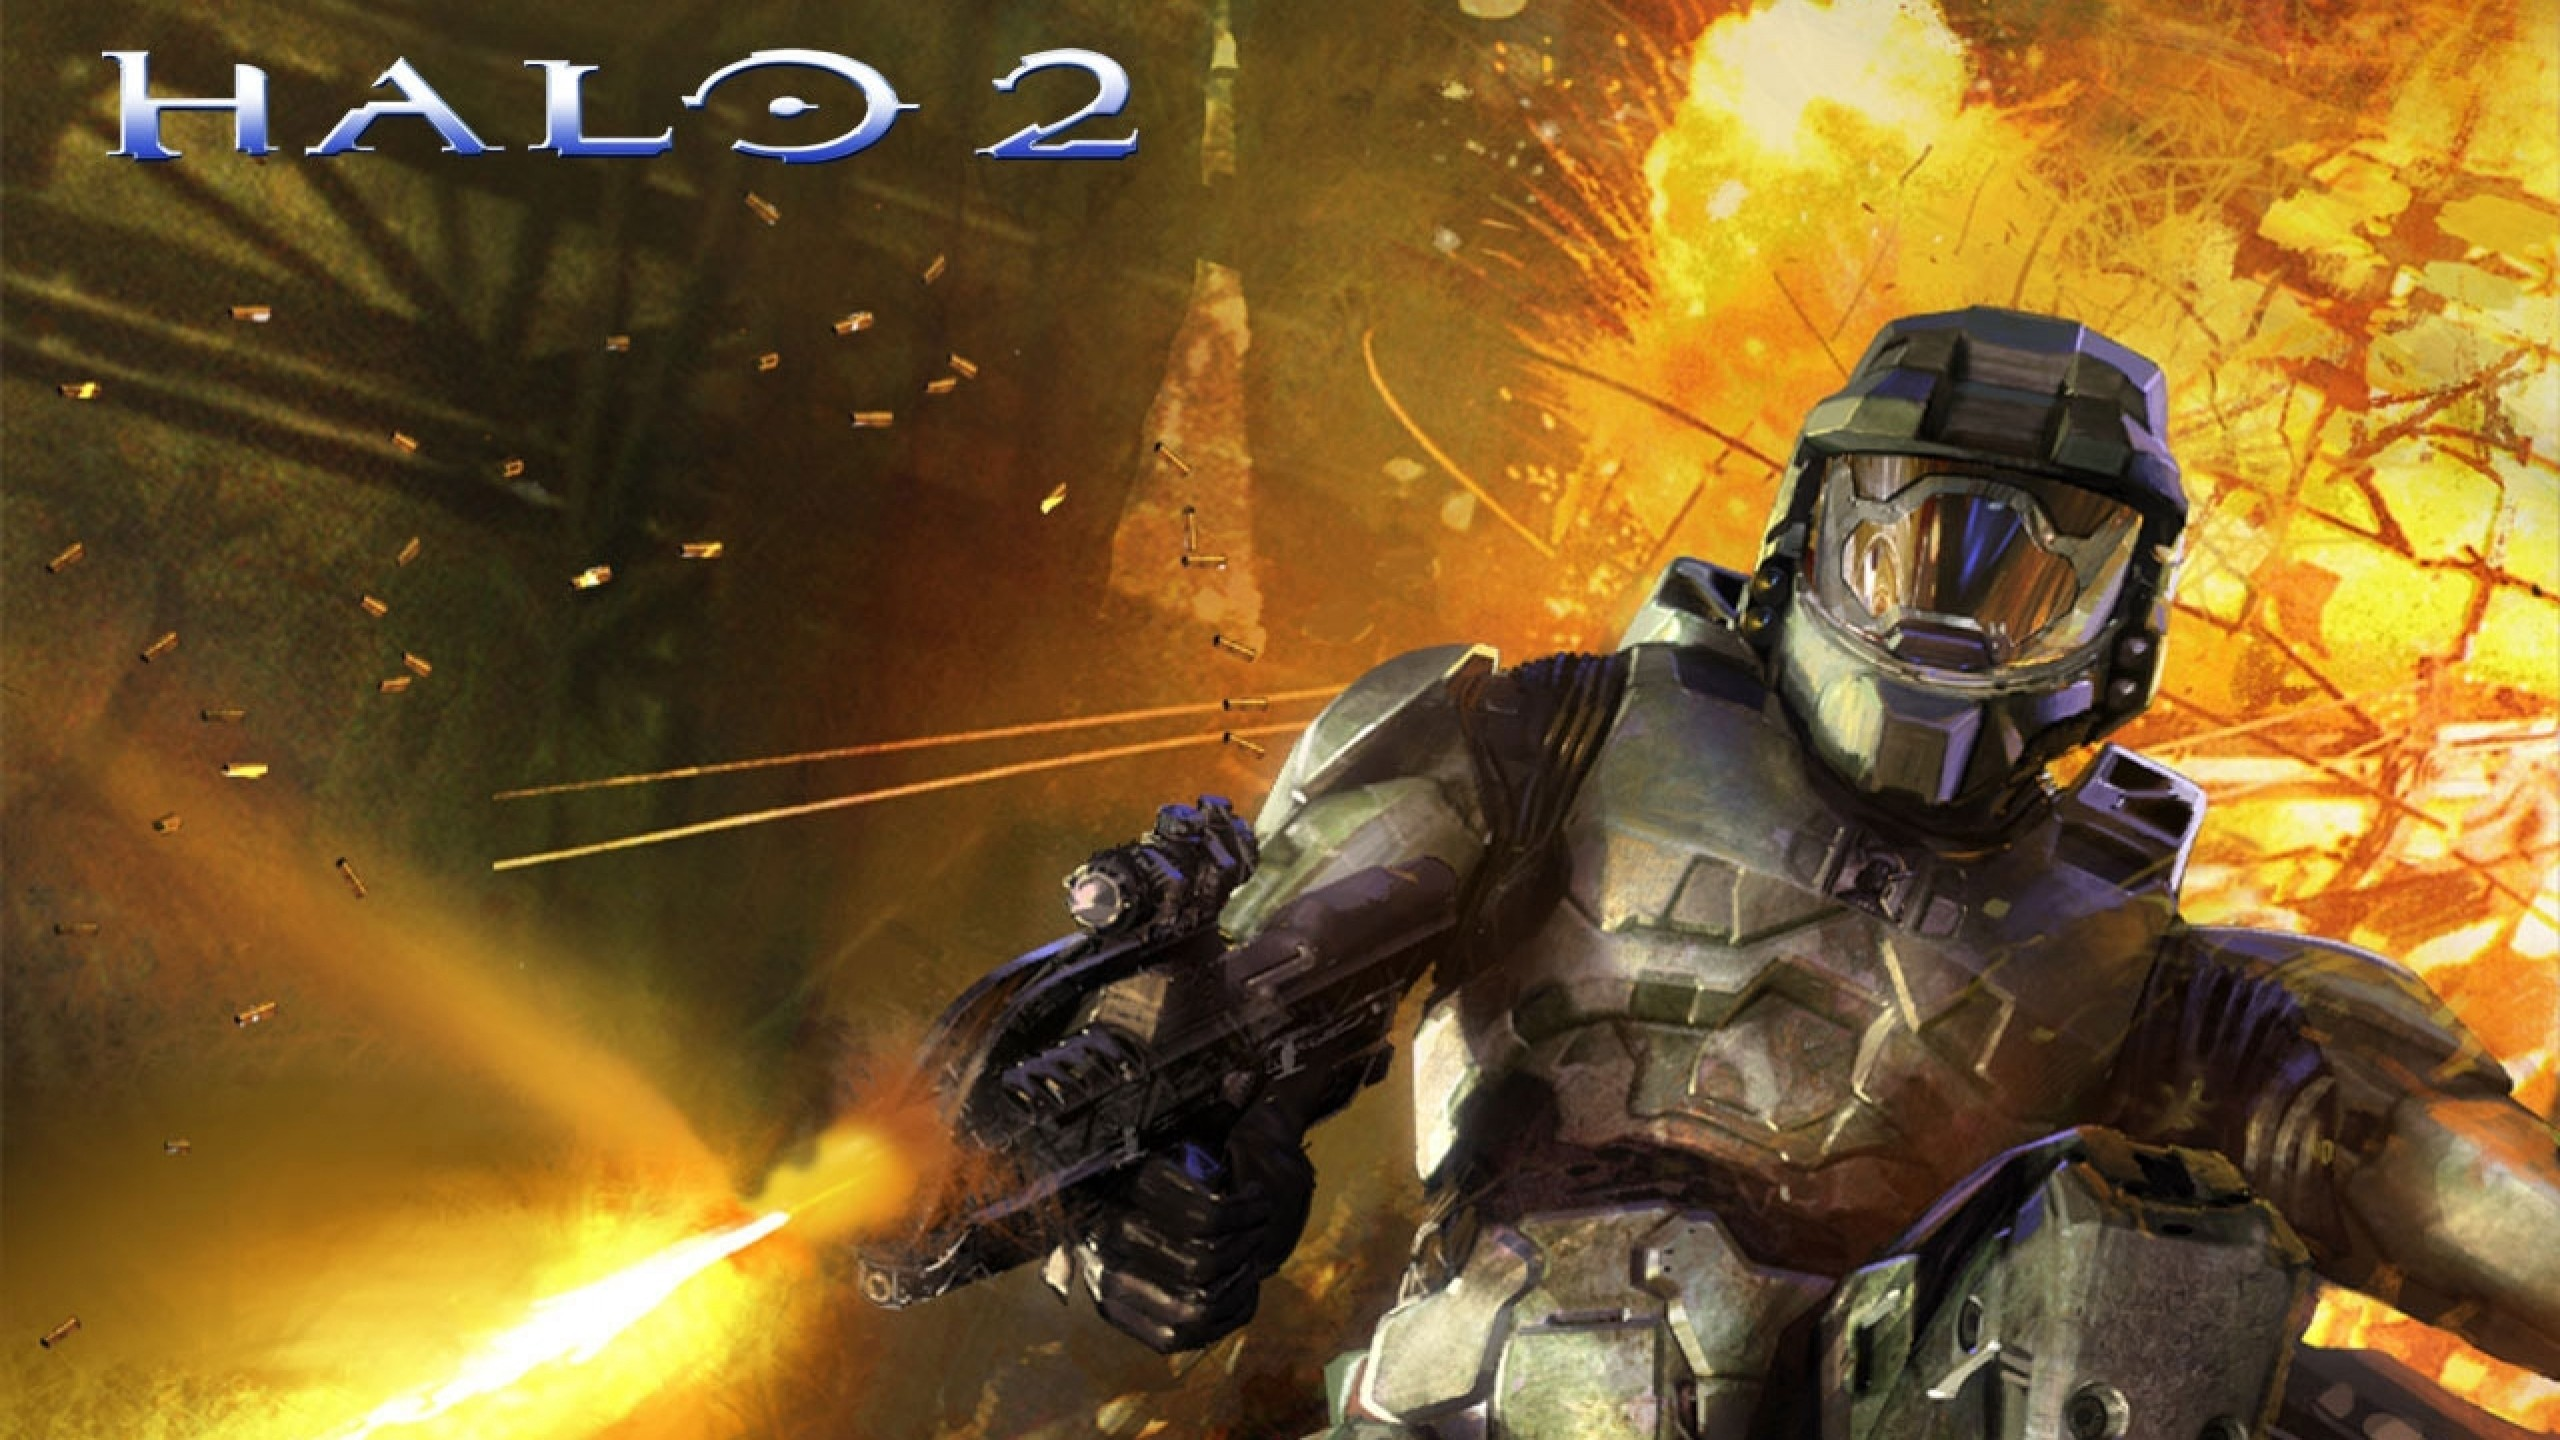 halo halo 2 halo master chief collection xbox one